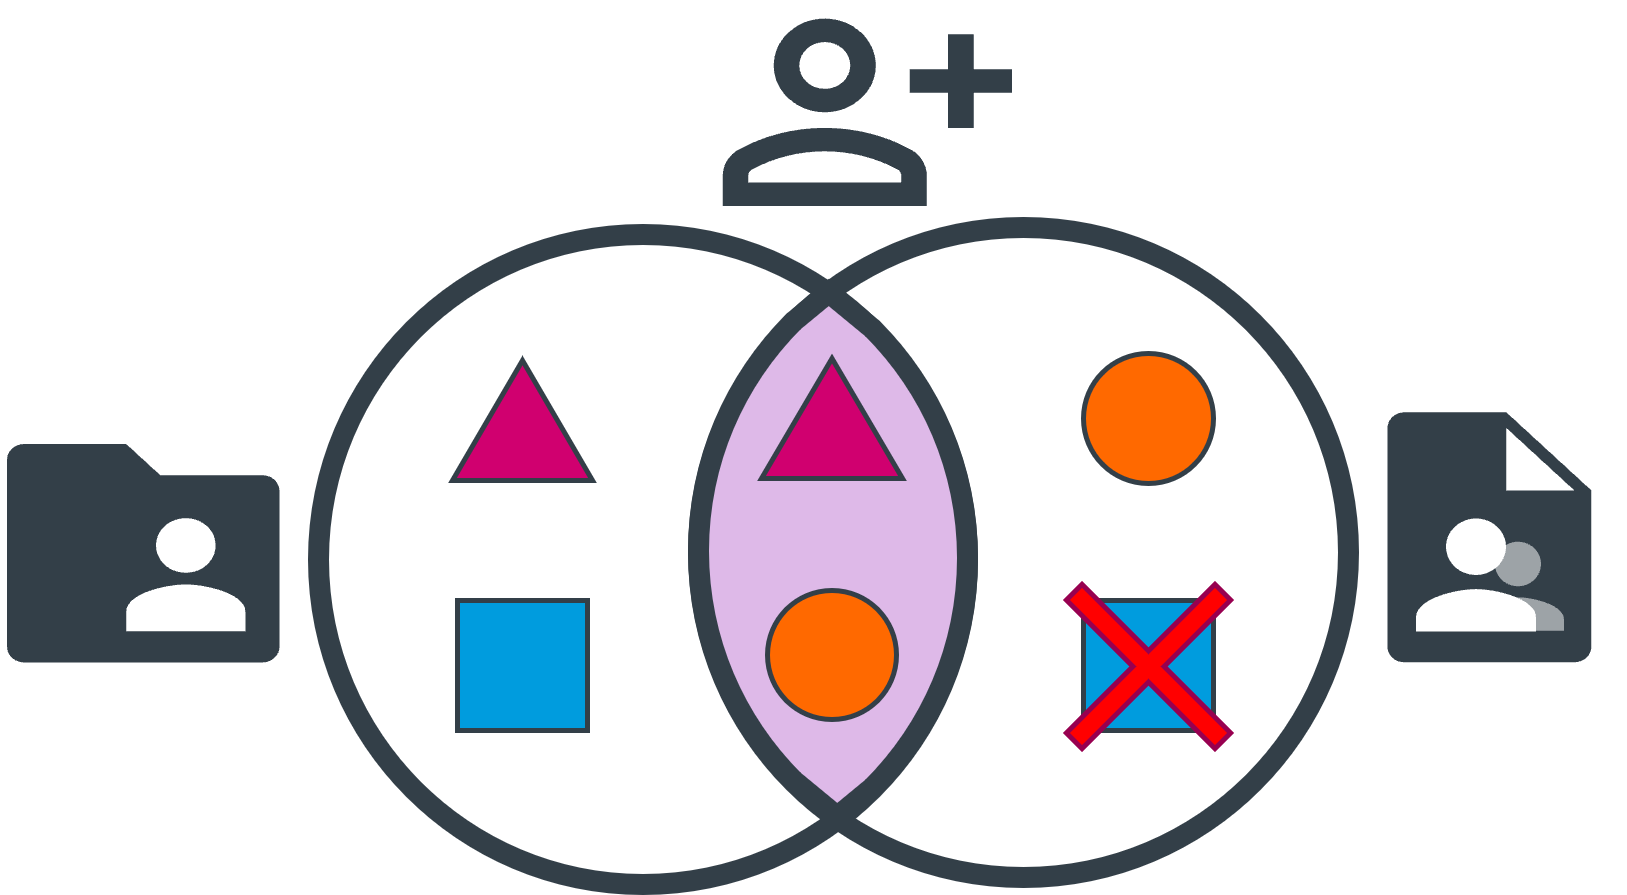 A Venn diagram: The left circle represents the folder permissions, and contains a pink triangle and a blue square. The right circle represents the file permissions, and contains an orange circle and a crossed-out blue square. The intersection contains a pink triangle and an orange circle.